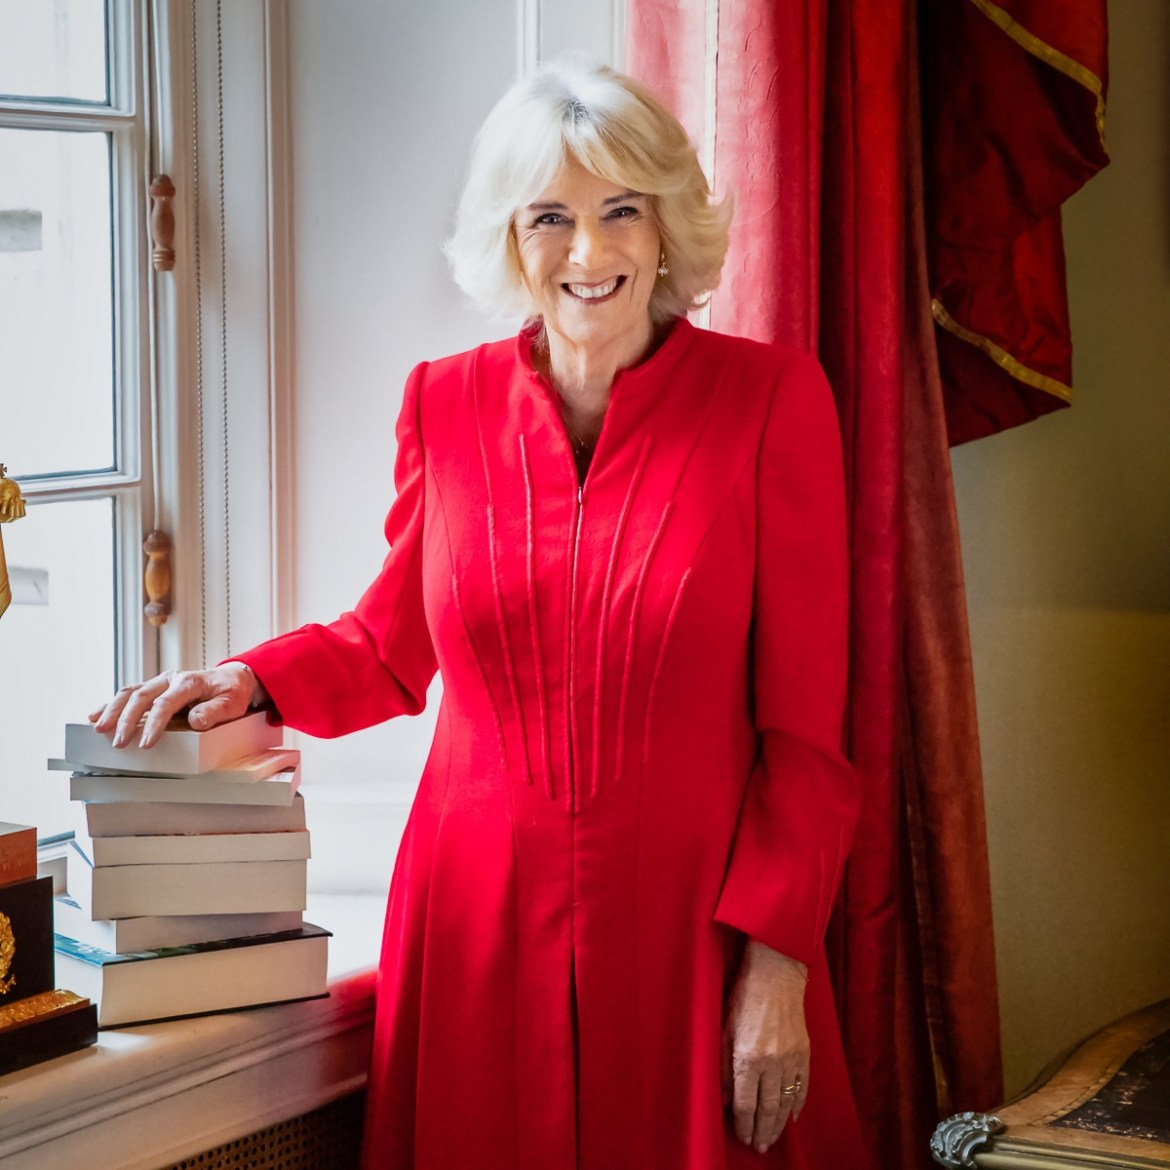 Camilla, The Duchess of Cornwall, in a red coat dress with her hand on a pile of books to launch her Reading Room